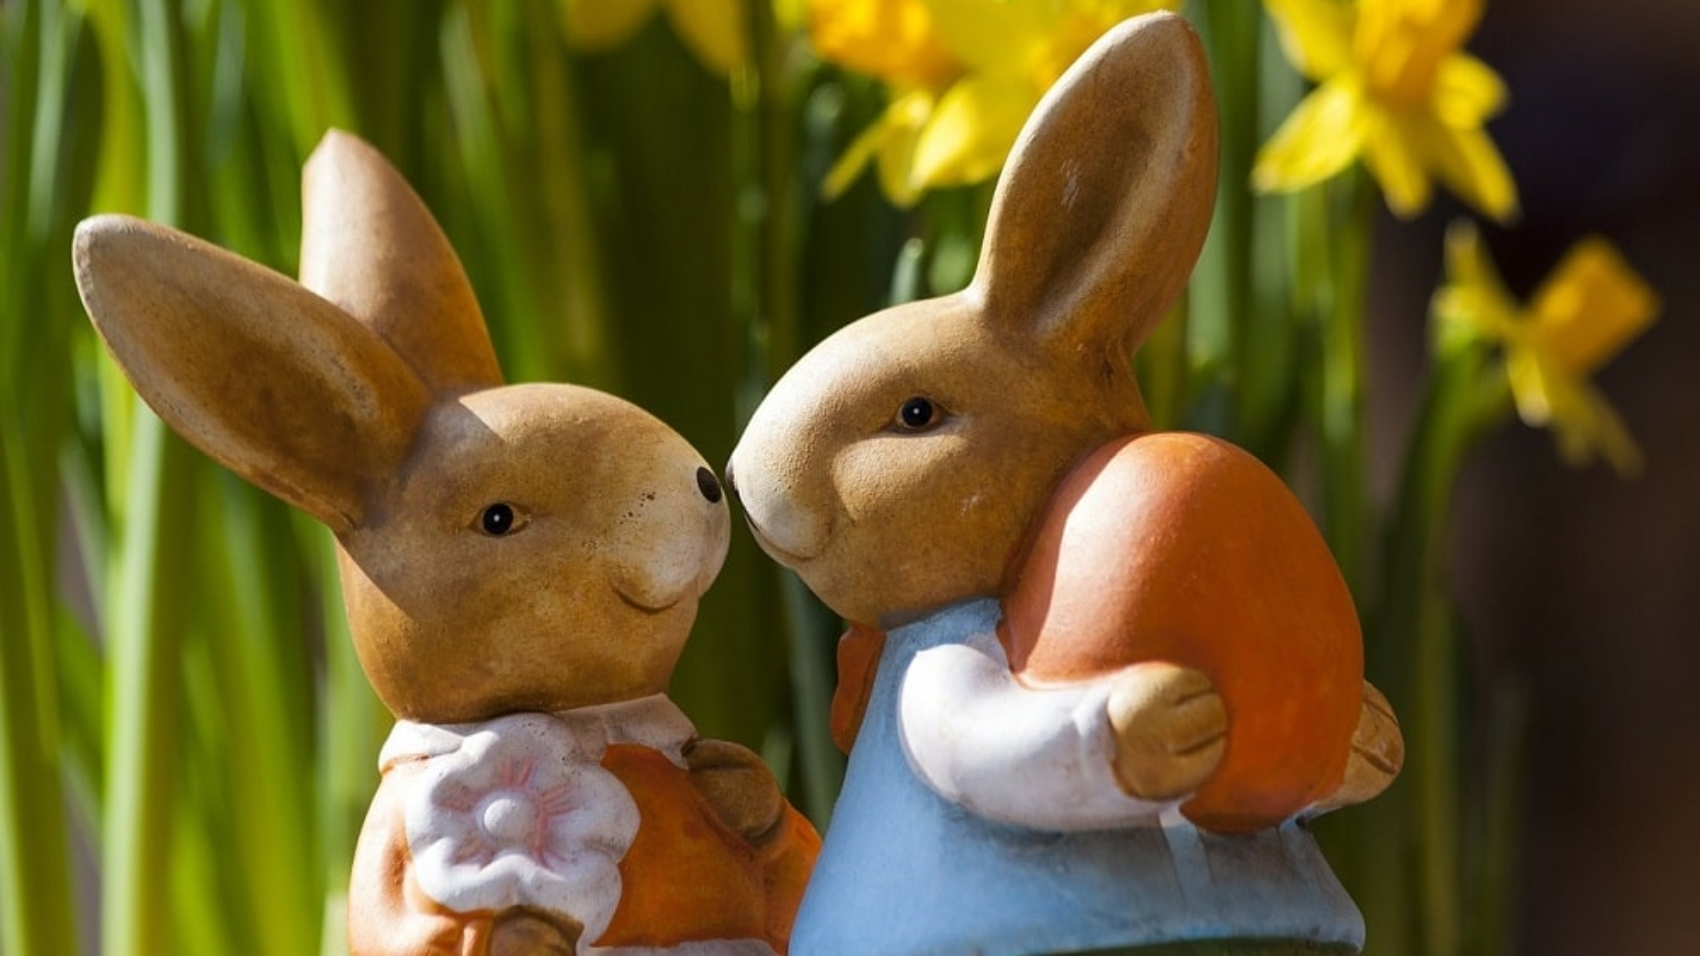 5 Simple Ways to Explore Easter Traditions With Kids